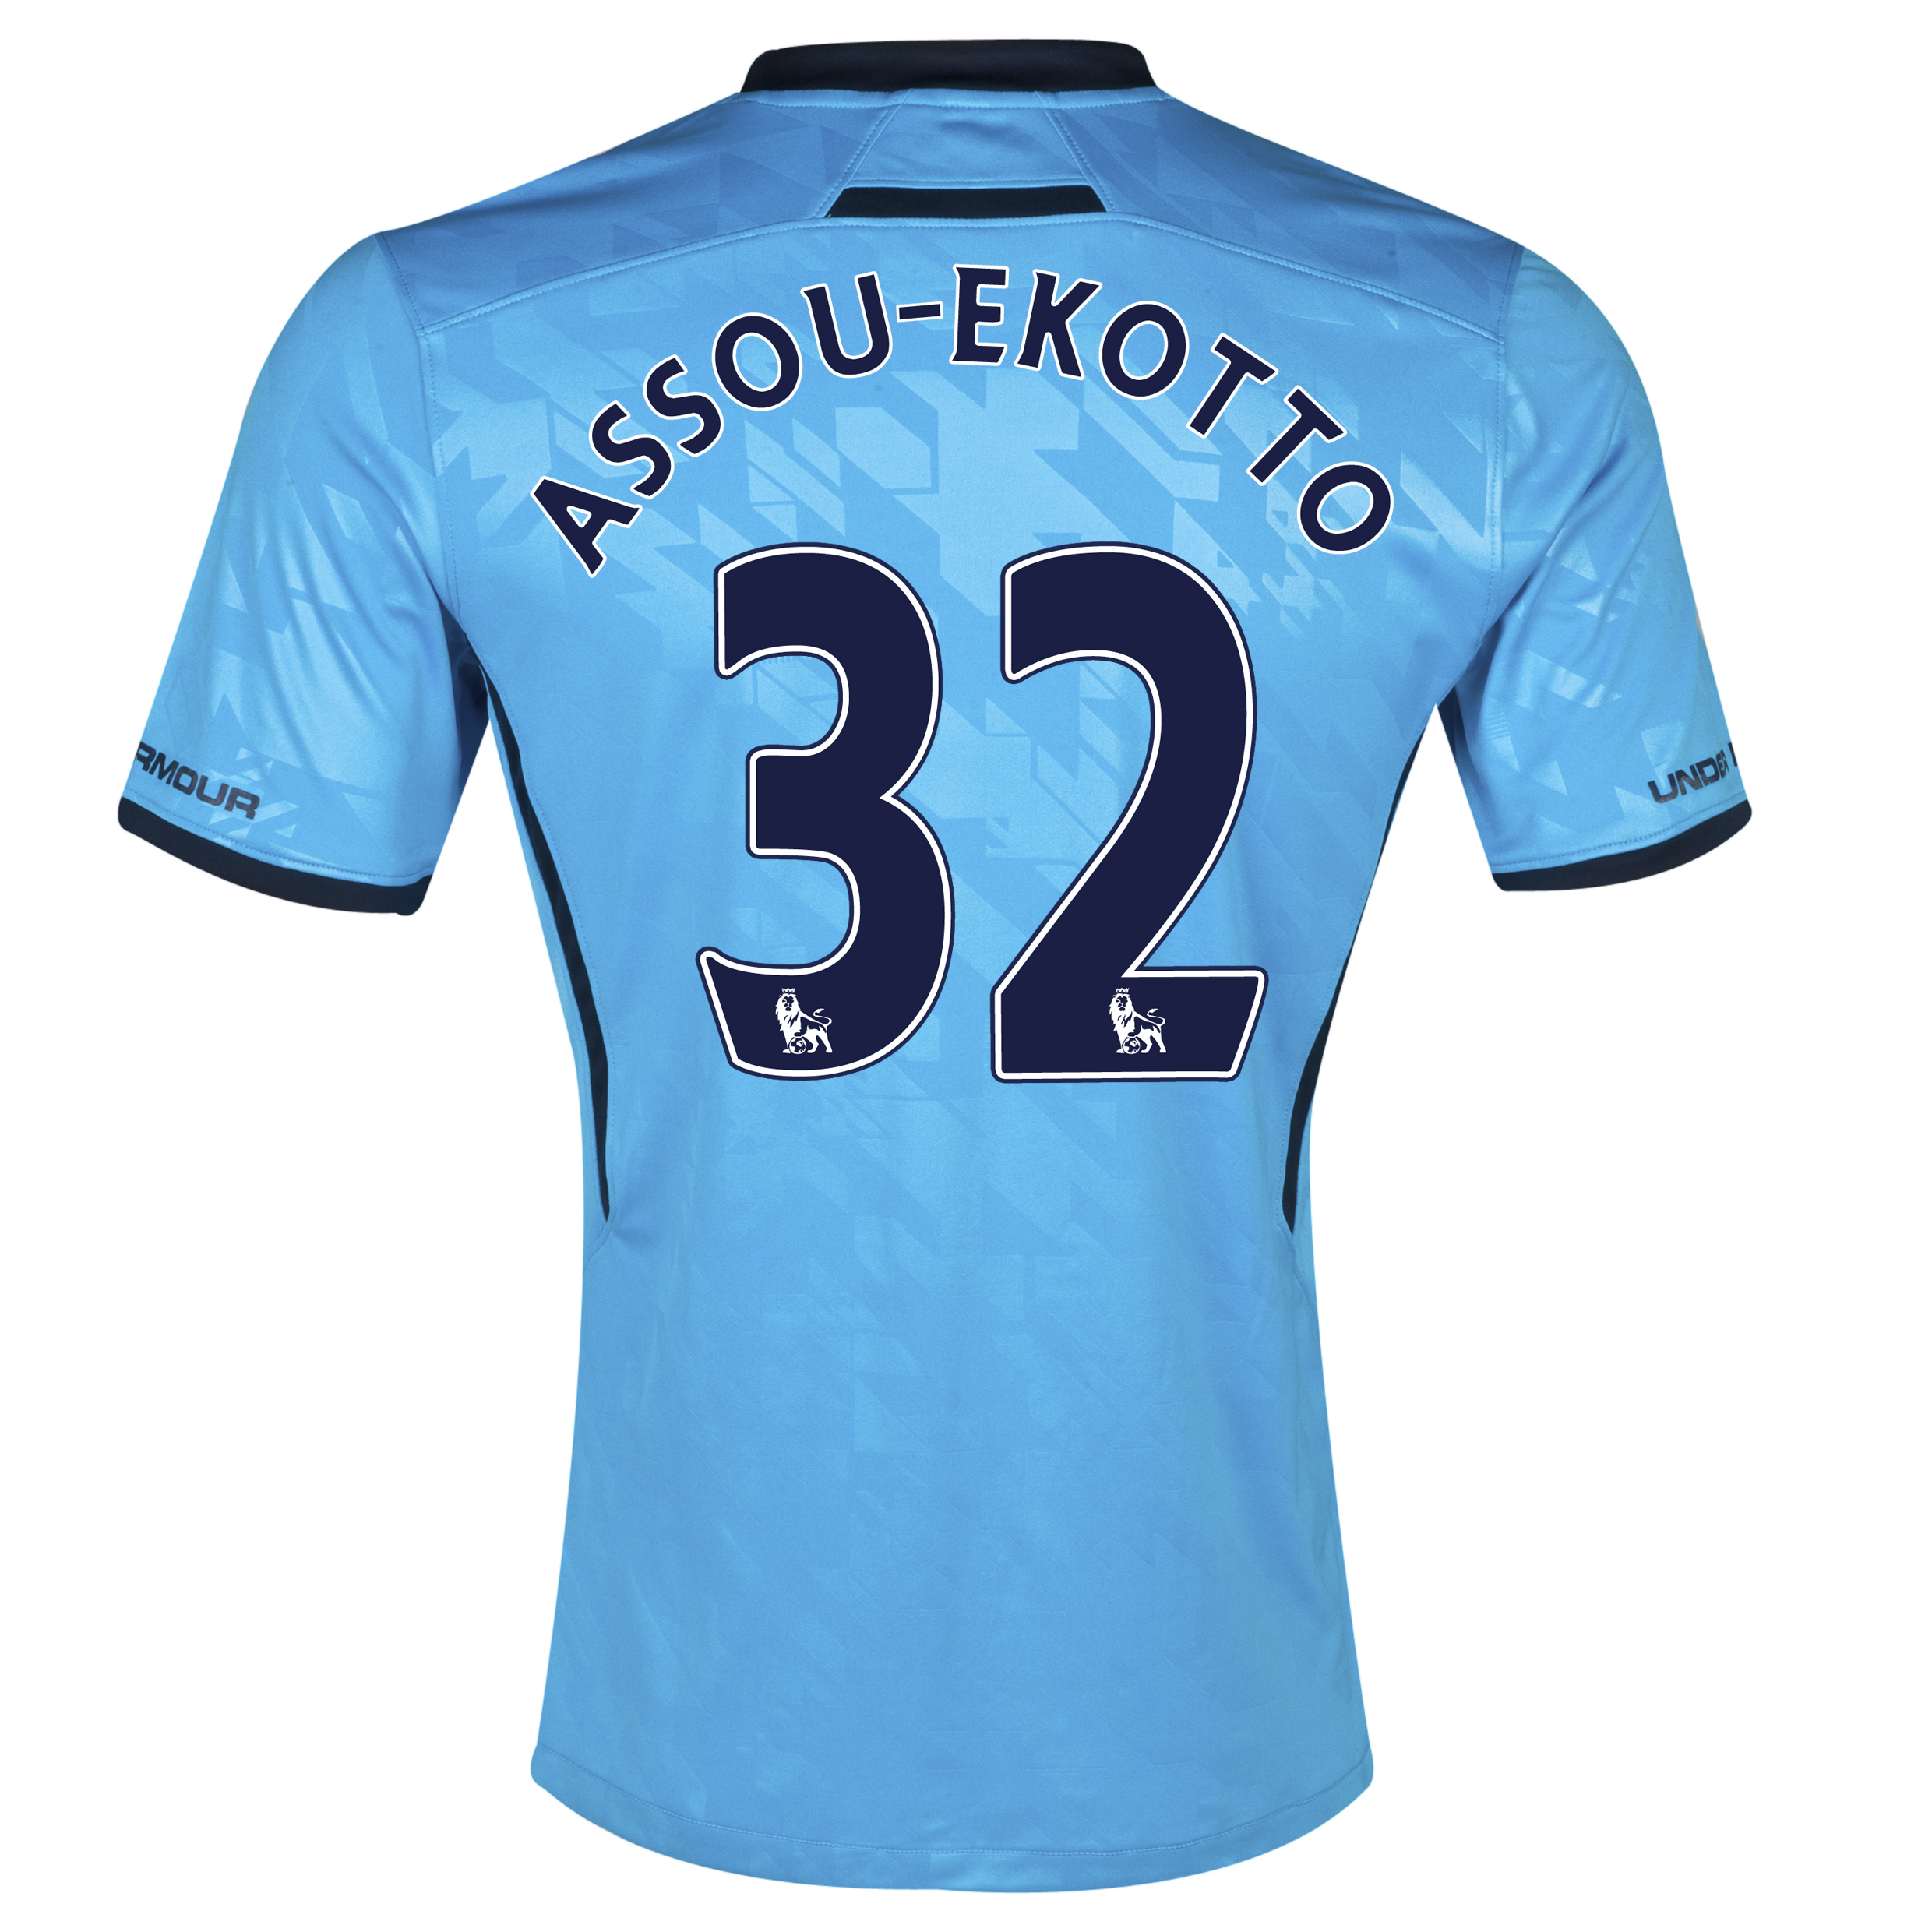 Tottenham Hotspur Away Shirt 2013/14 - Womens with Assou-Ekotto 32 printing